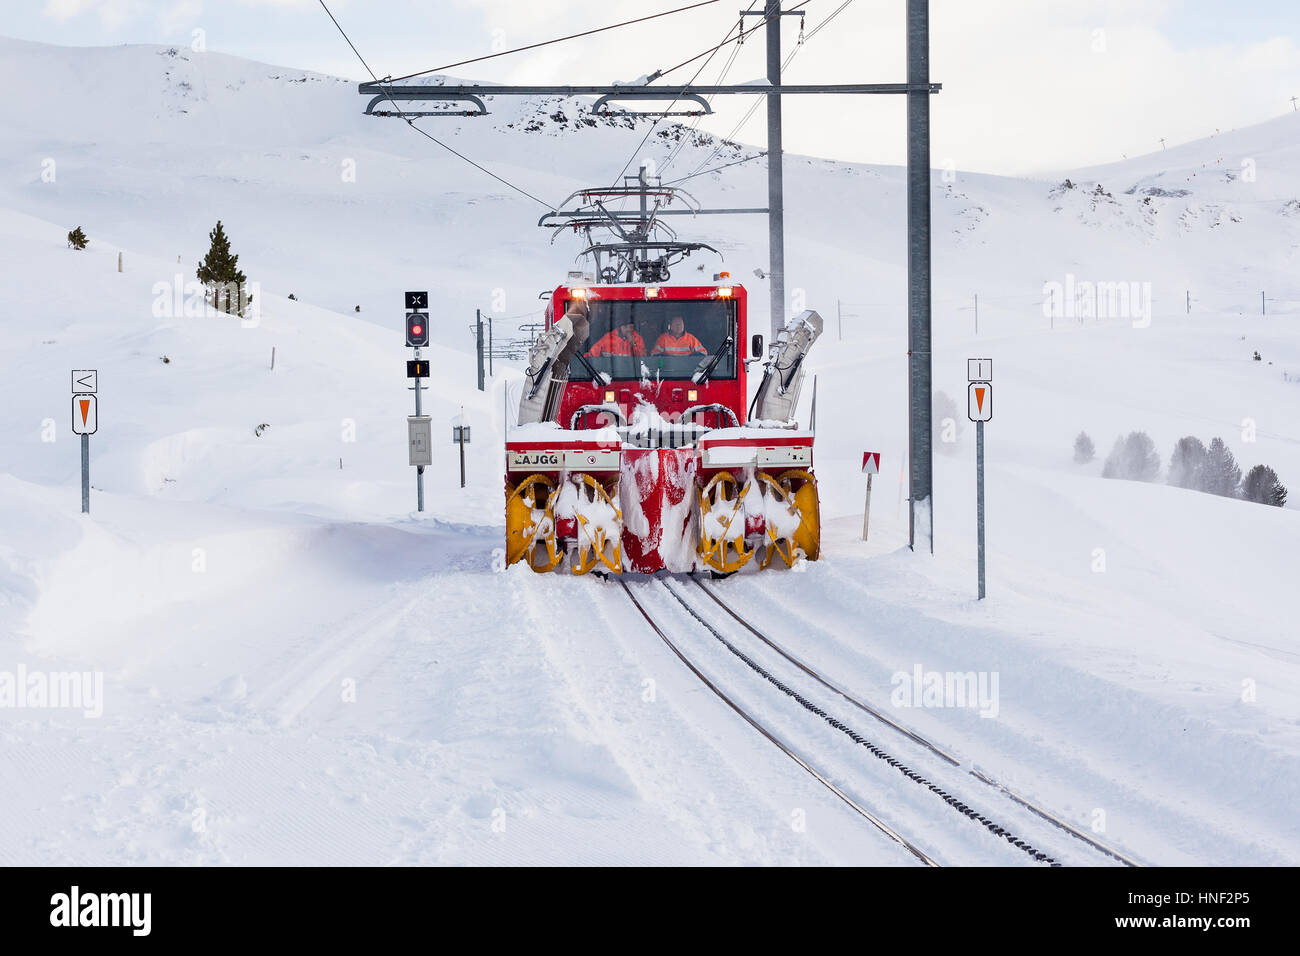 GRINDELWALD, SWITZERLAND - FEBRUARY 3, 2014 : A locomotive with snow blower attachments clears snow from the Lauterbrunnen - Stock Image